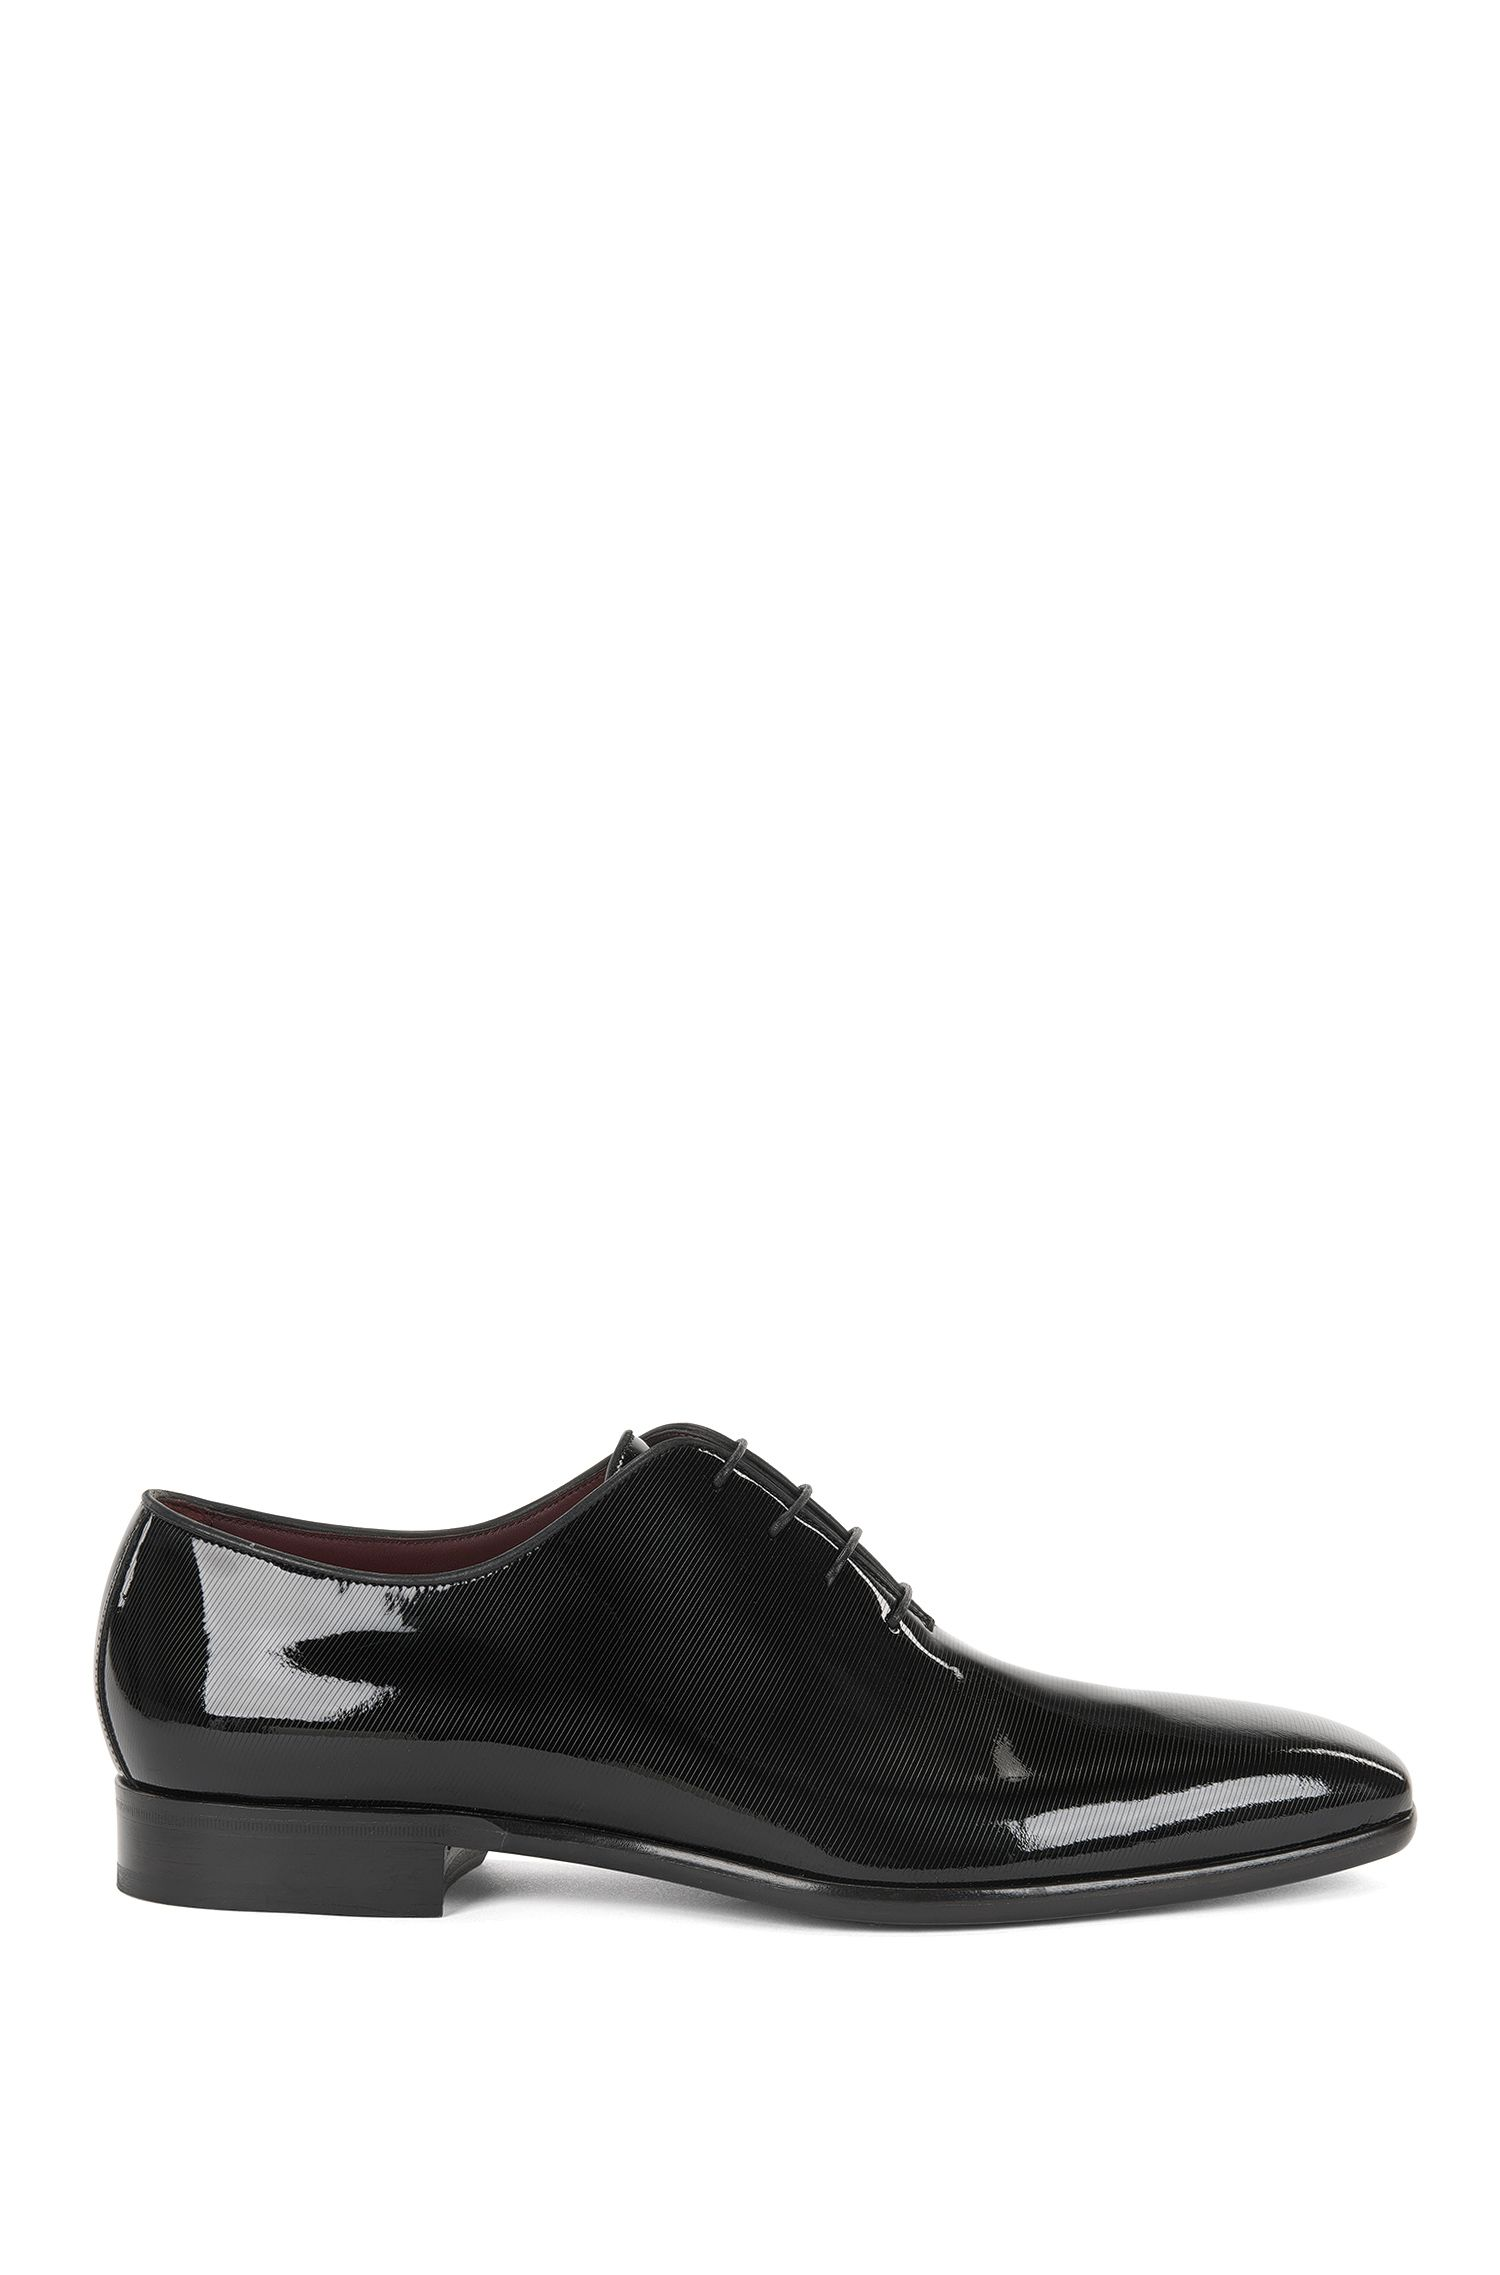 Oxford shoes in printed patent leather